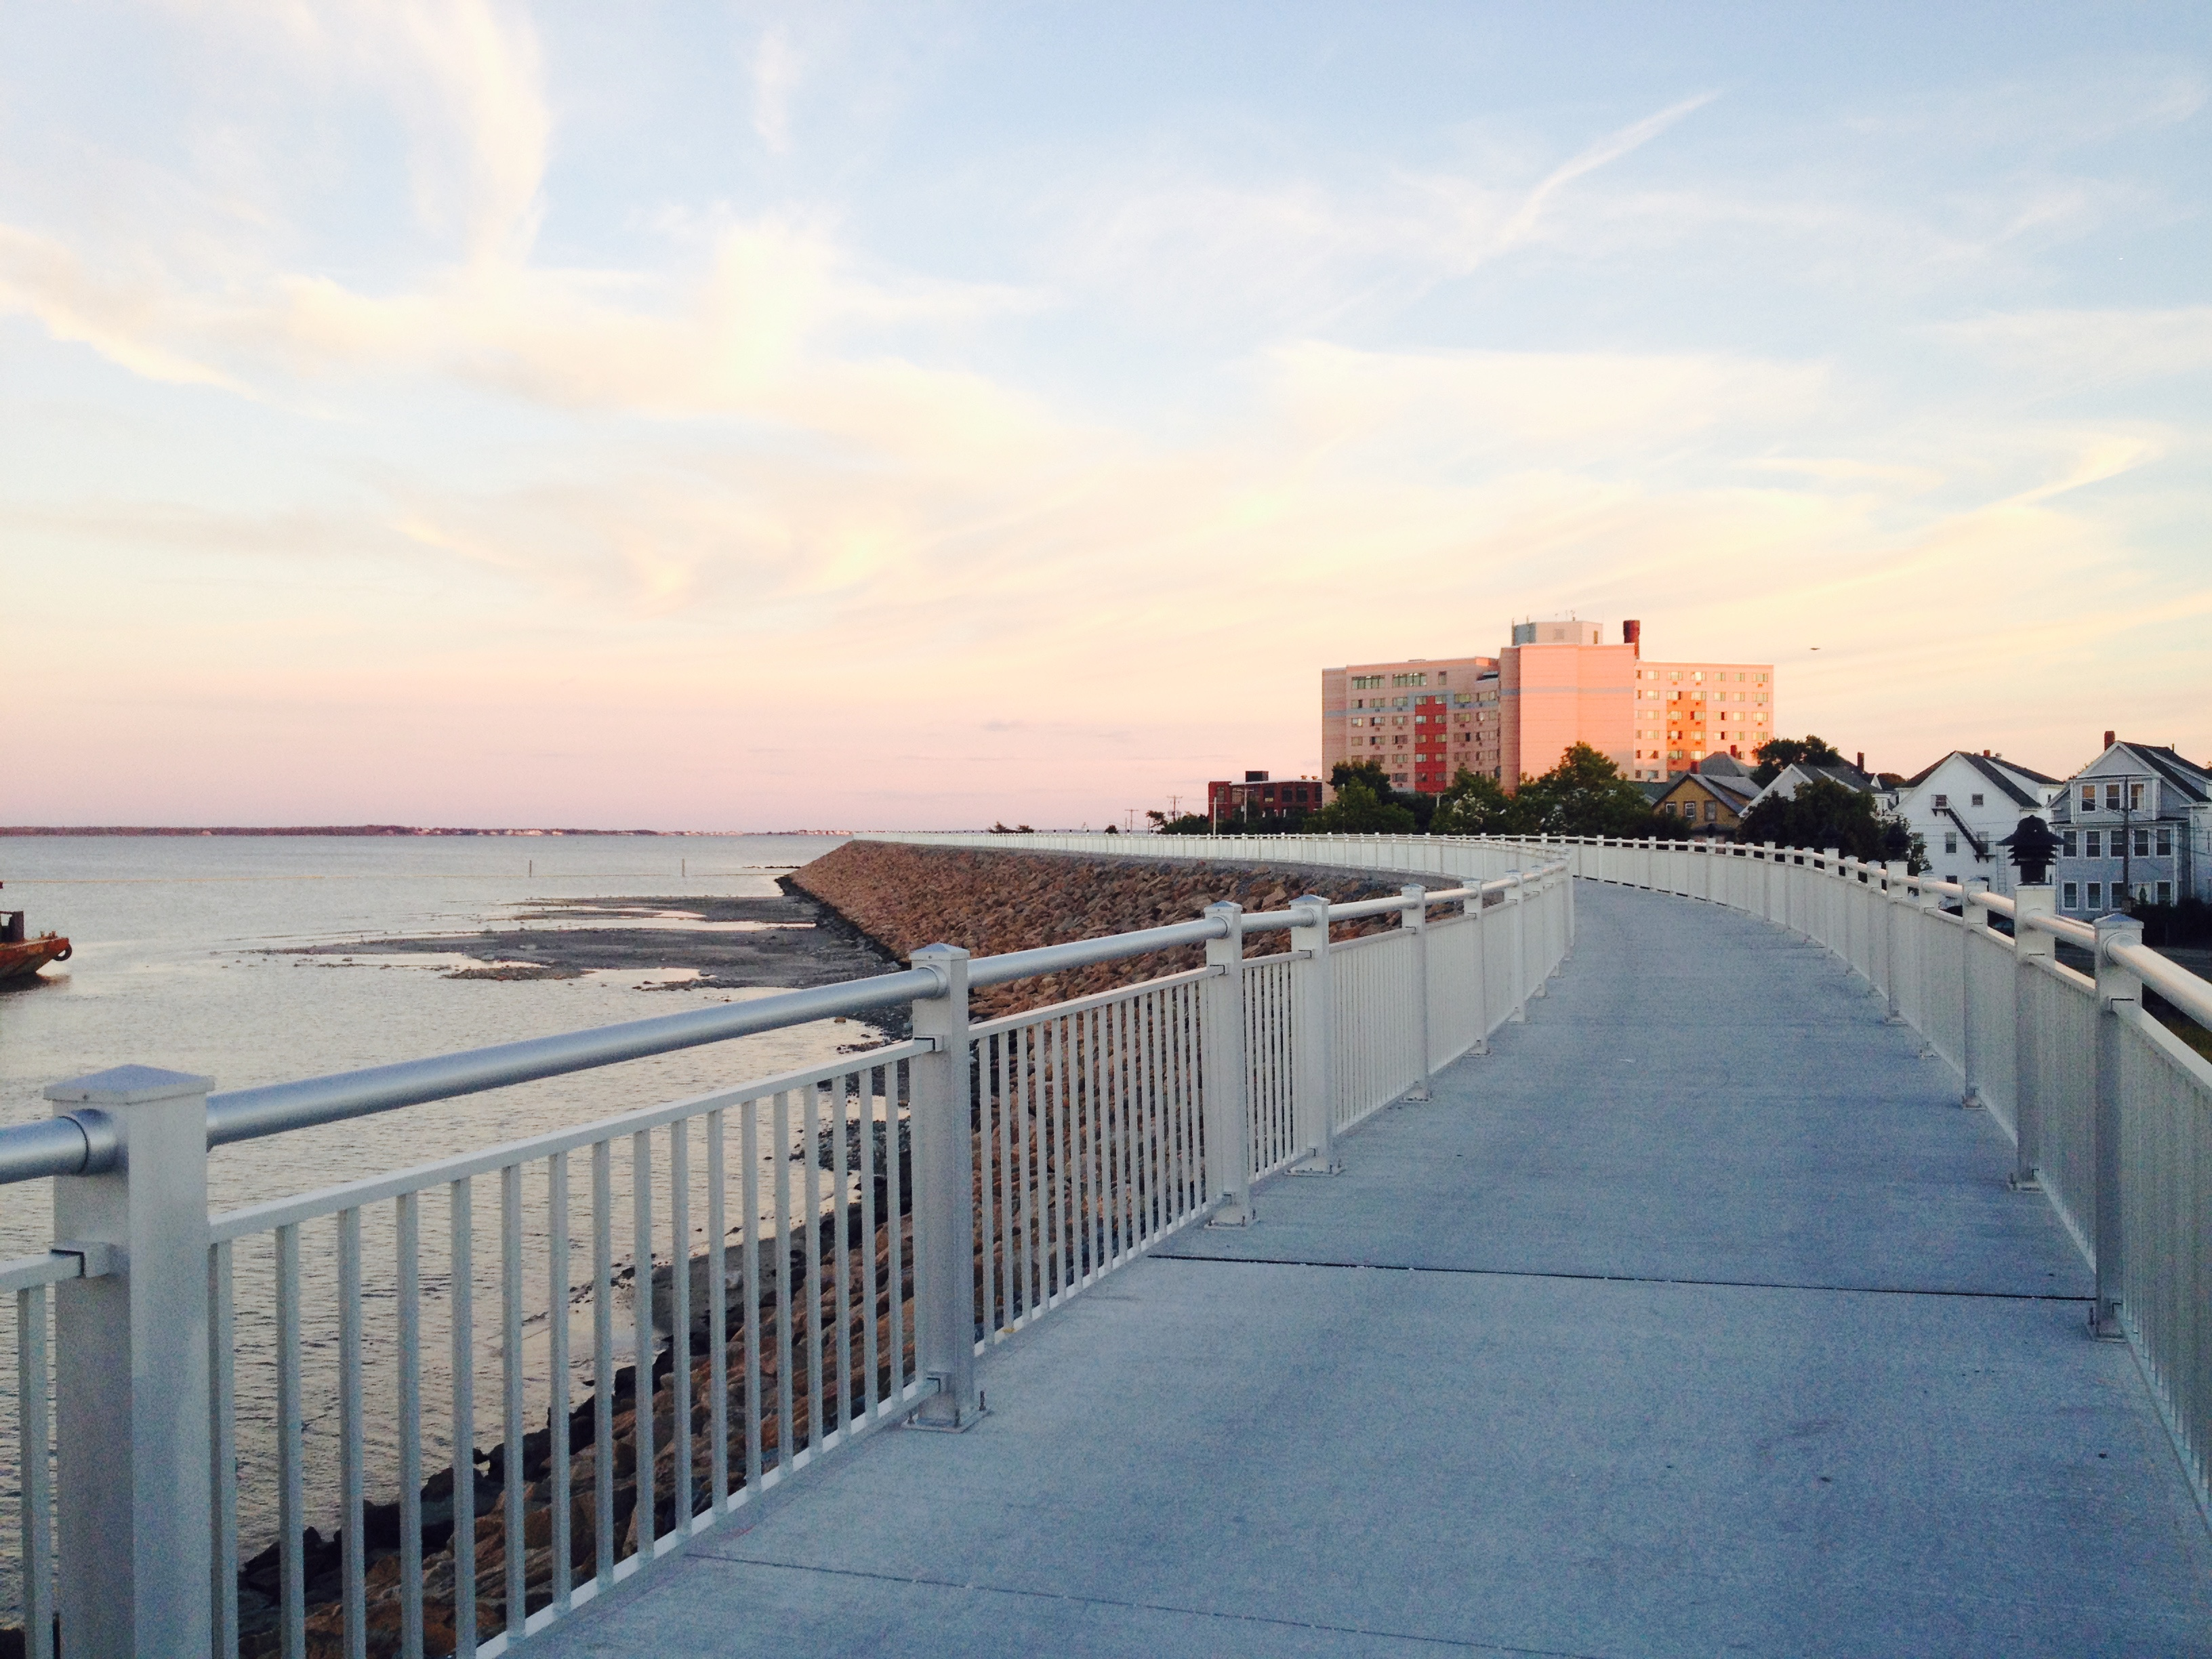 Harborwalk at sunset in New Bedford